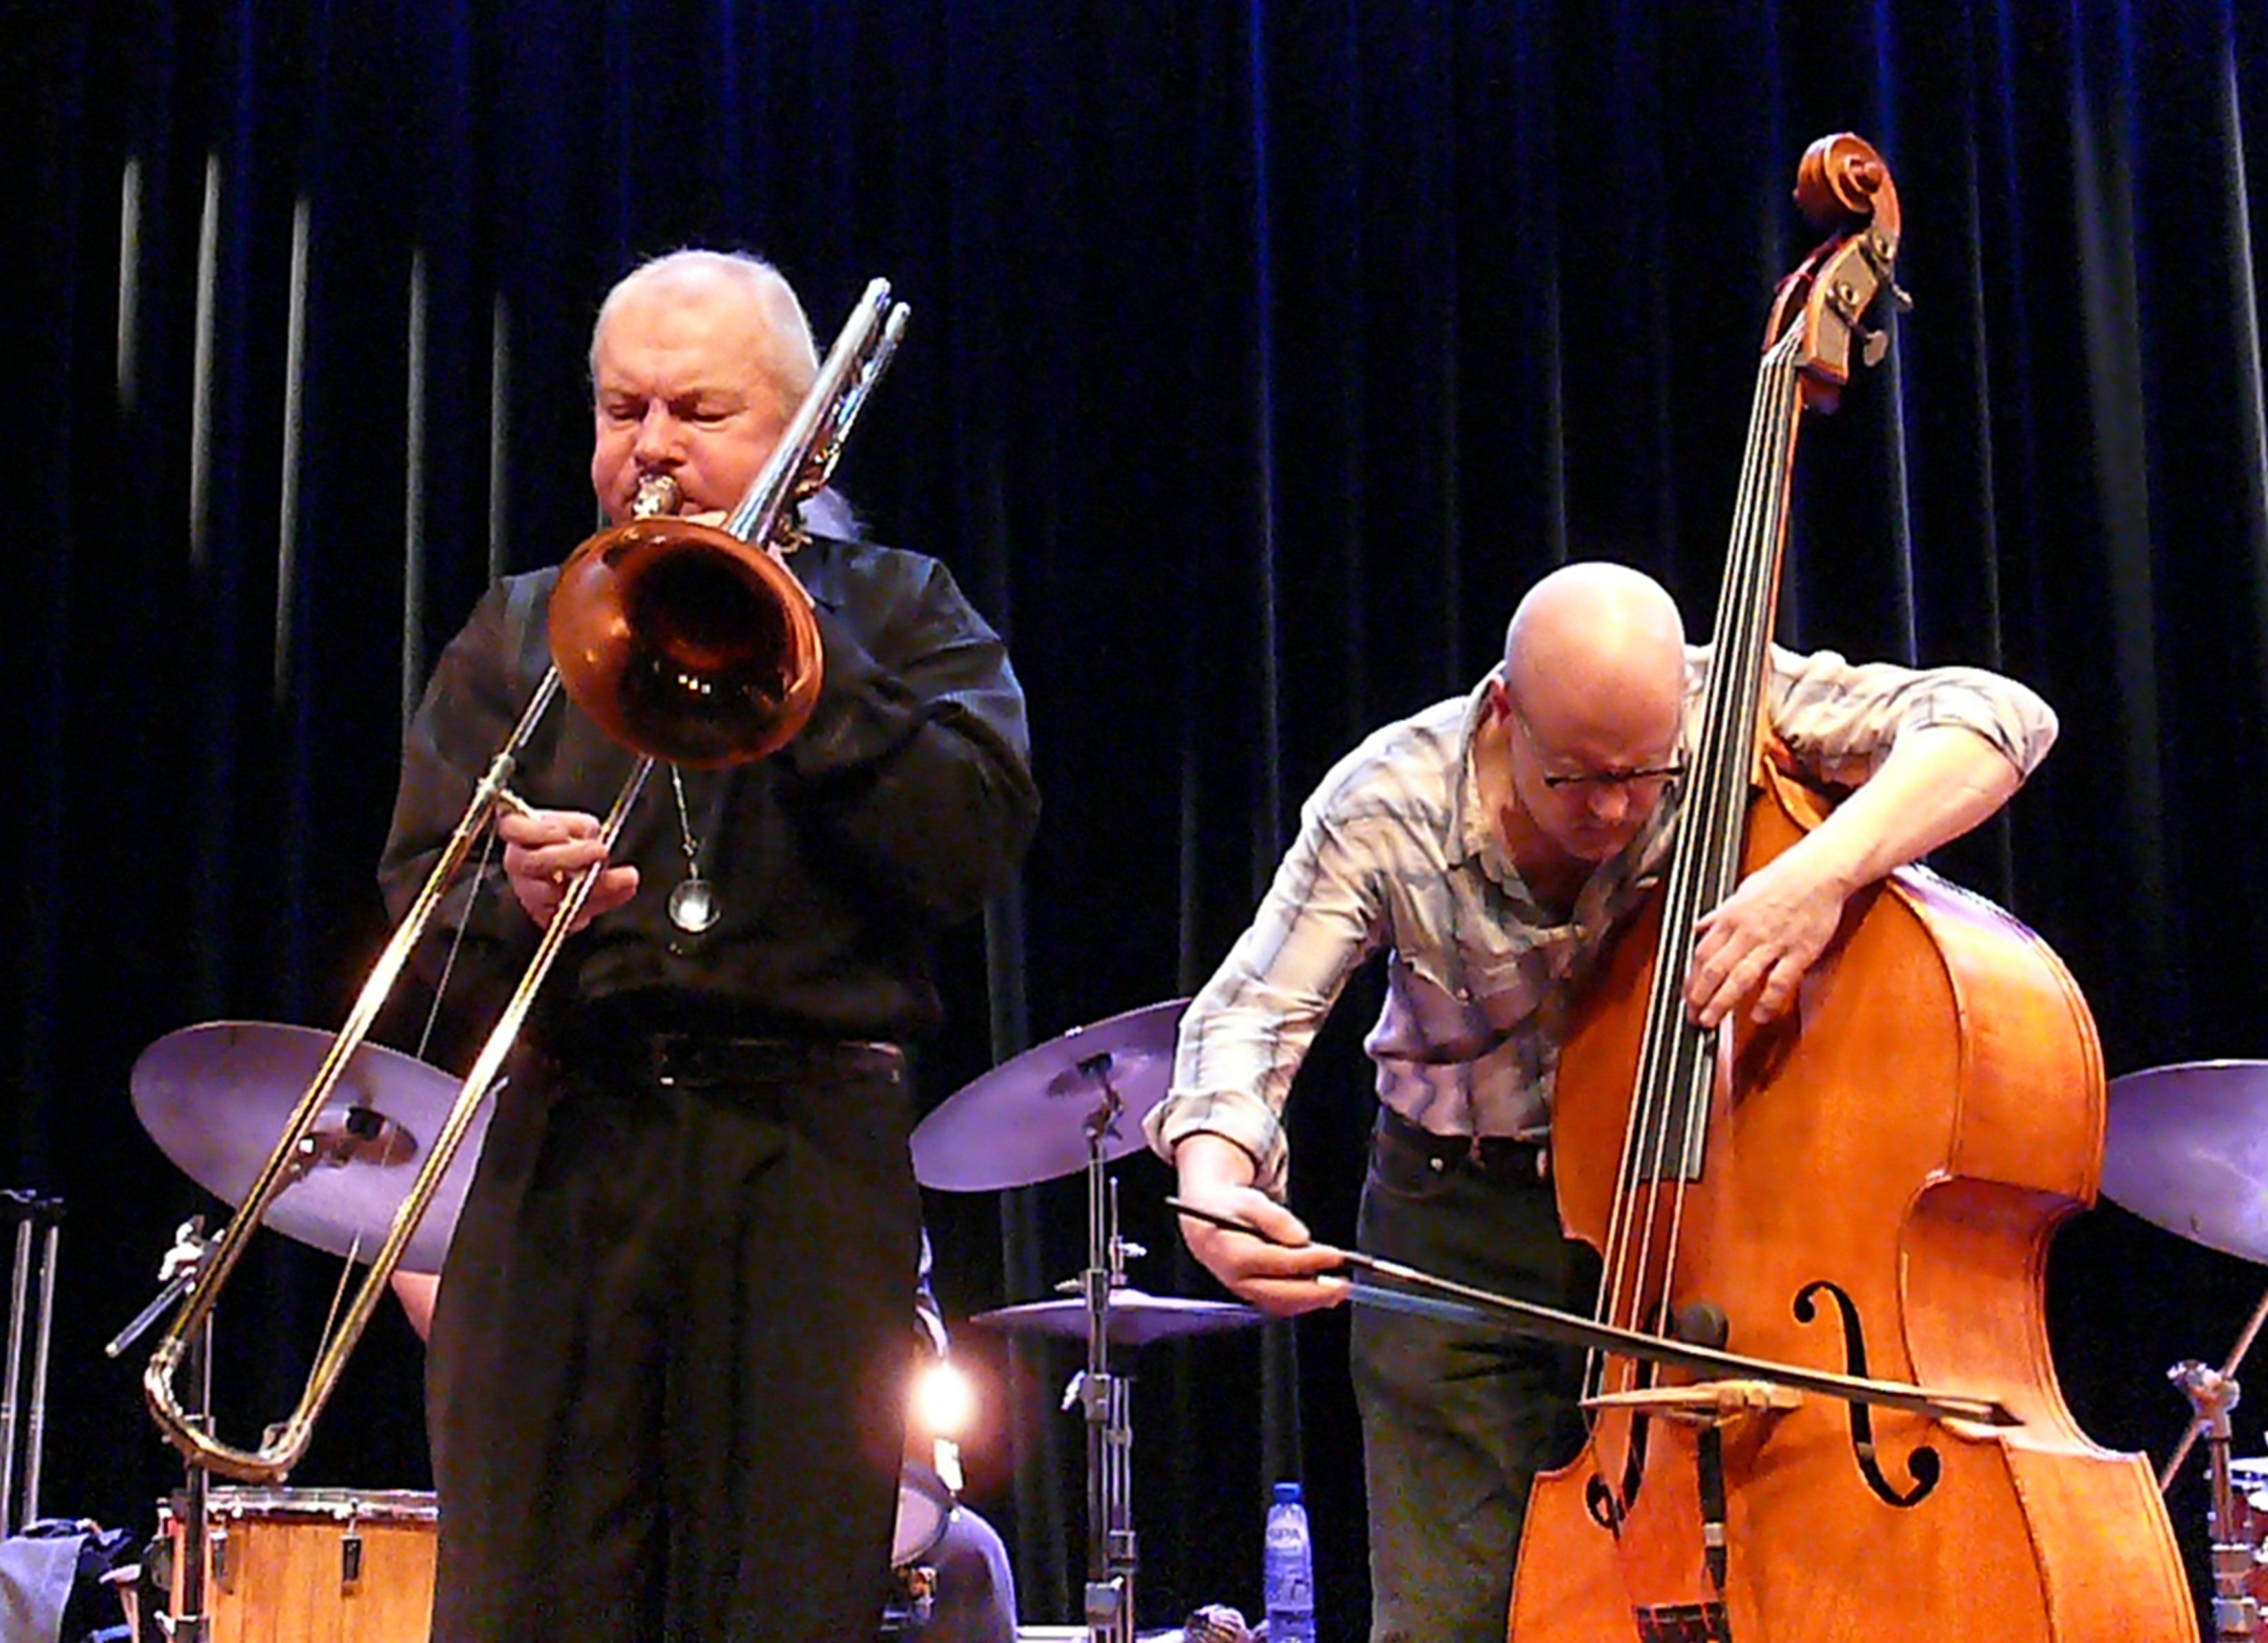 Conrad Bauer and Kent Kessler at the Bimhuis in Amsterdam, 13 February 2009